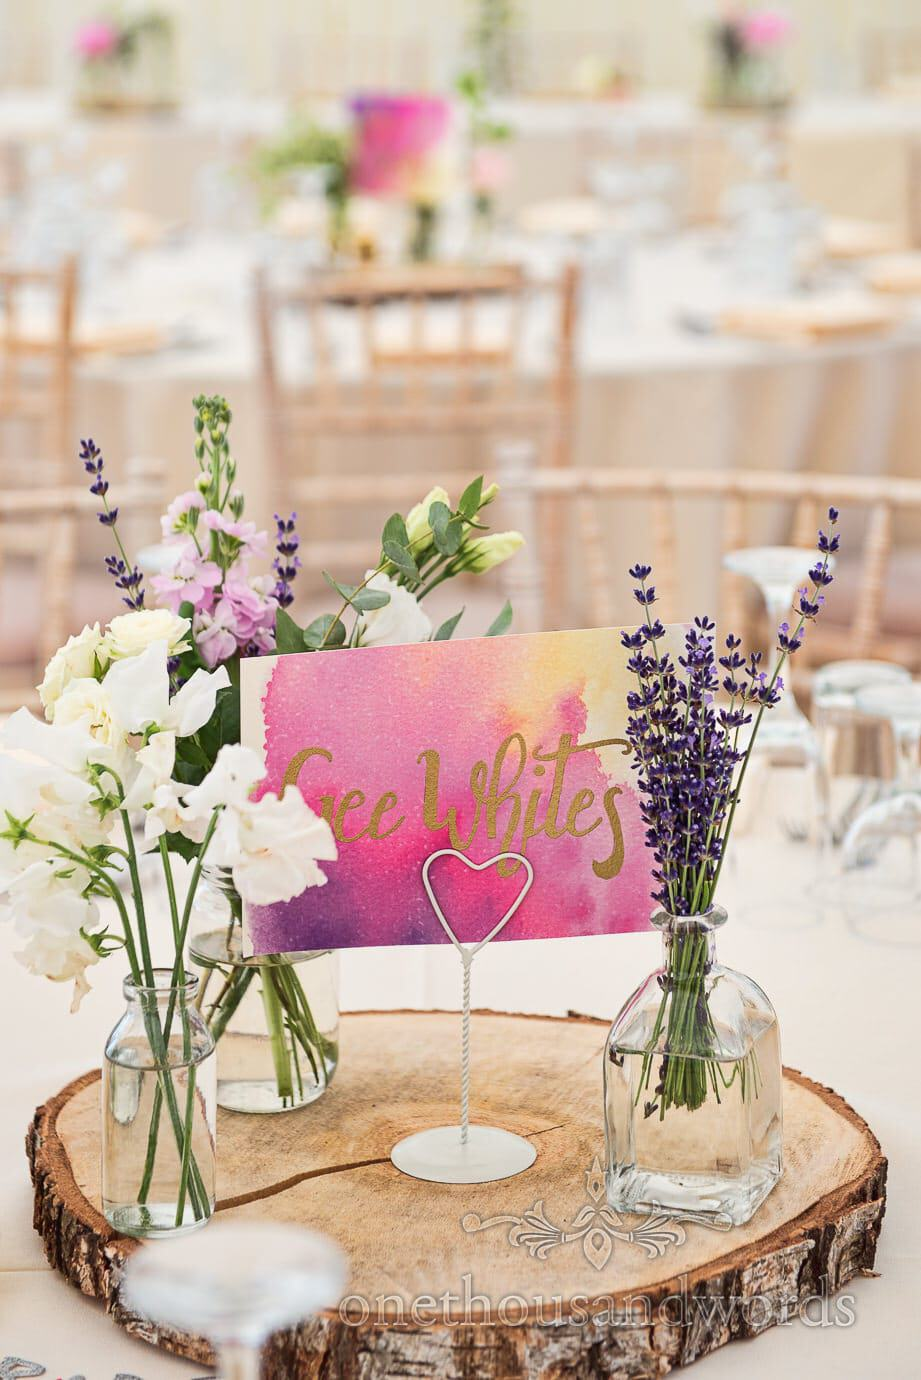 Country wedding name place sign with gold script on wooden tree slice in wedding marquee